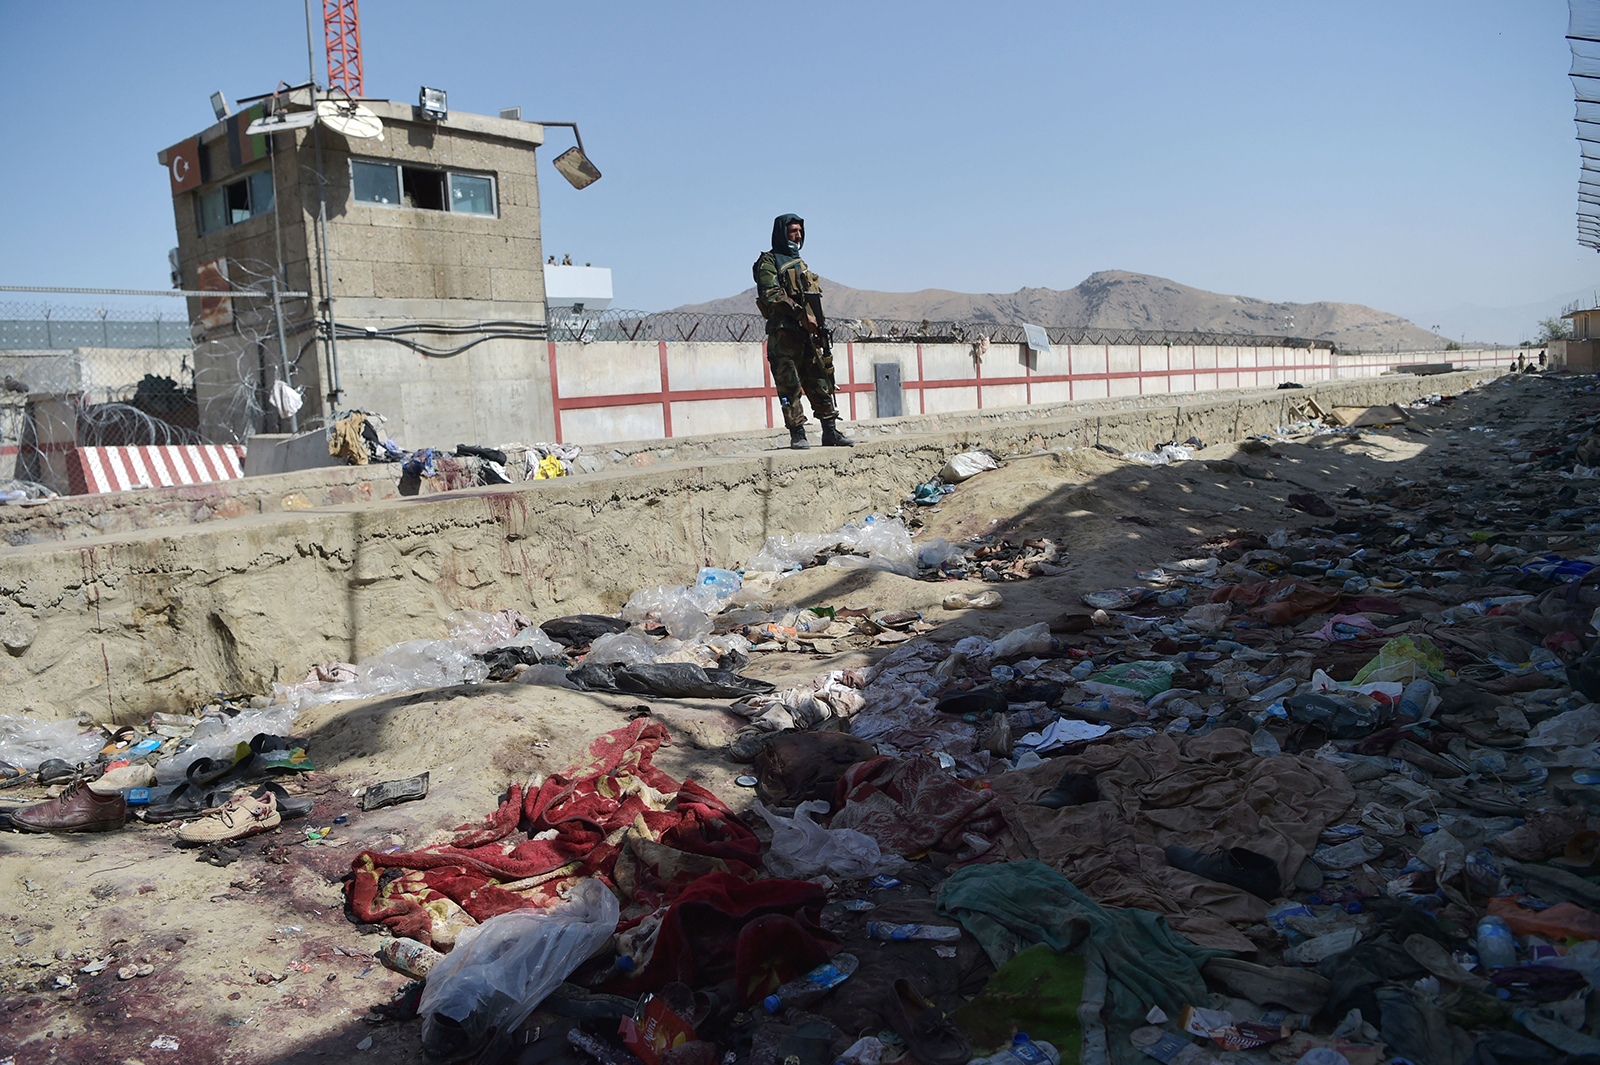 A Taliban fighter stands guard at the site of the August 26 suicide bombs on August 27.